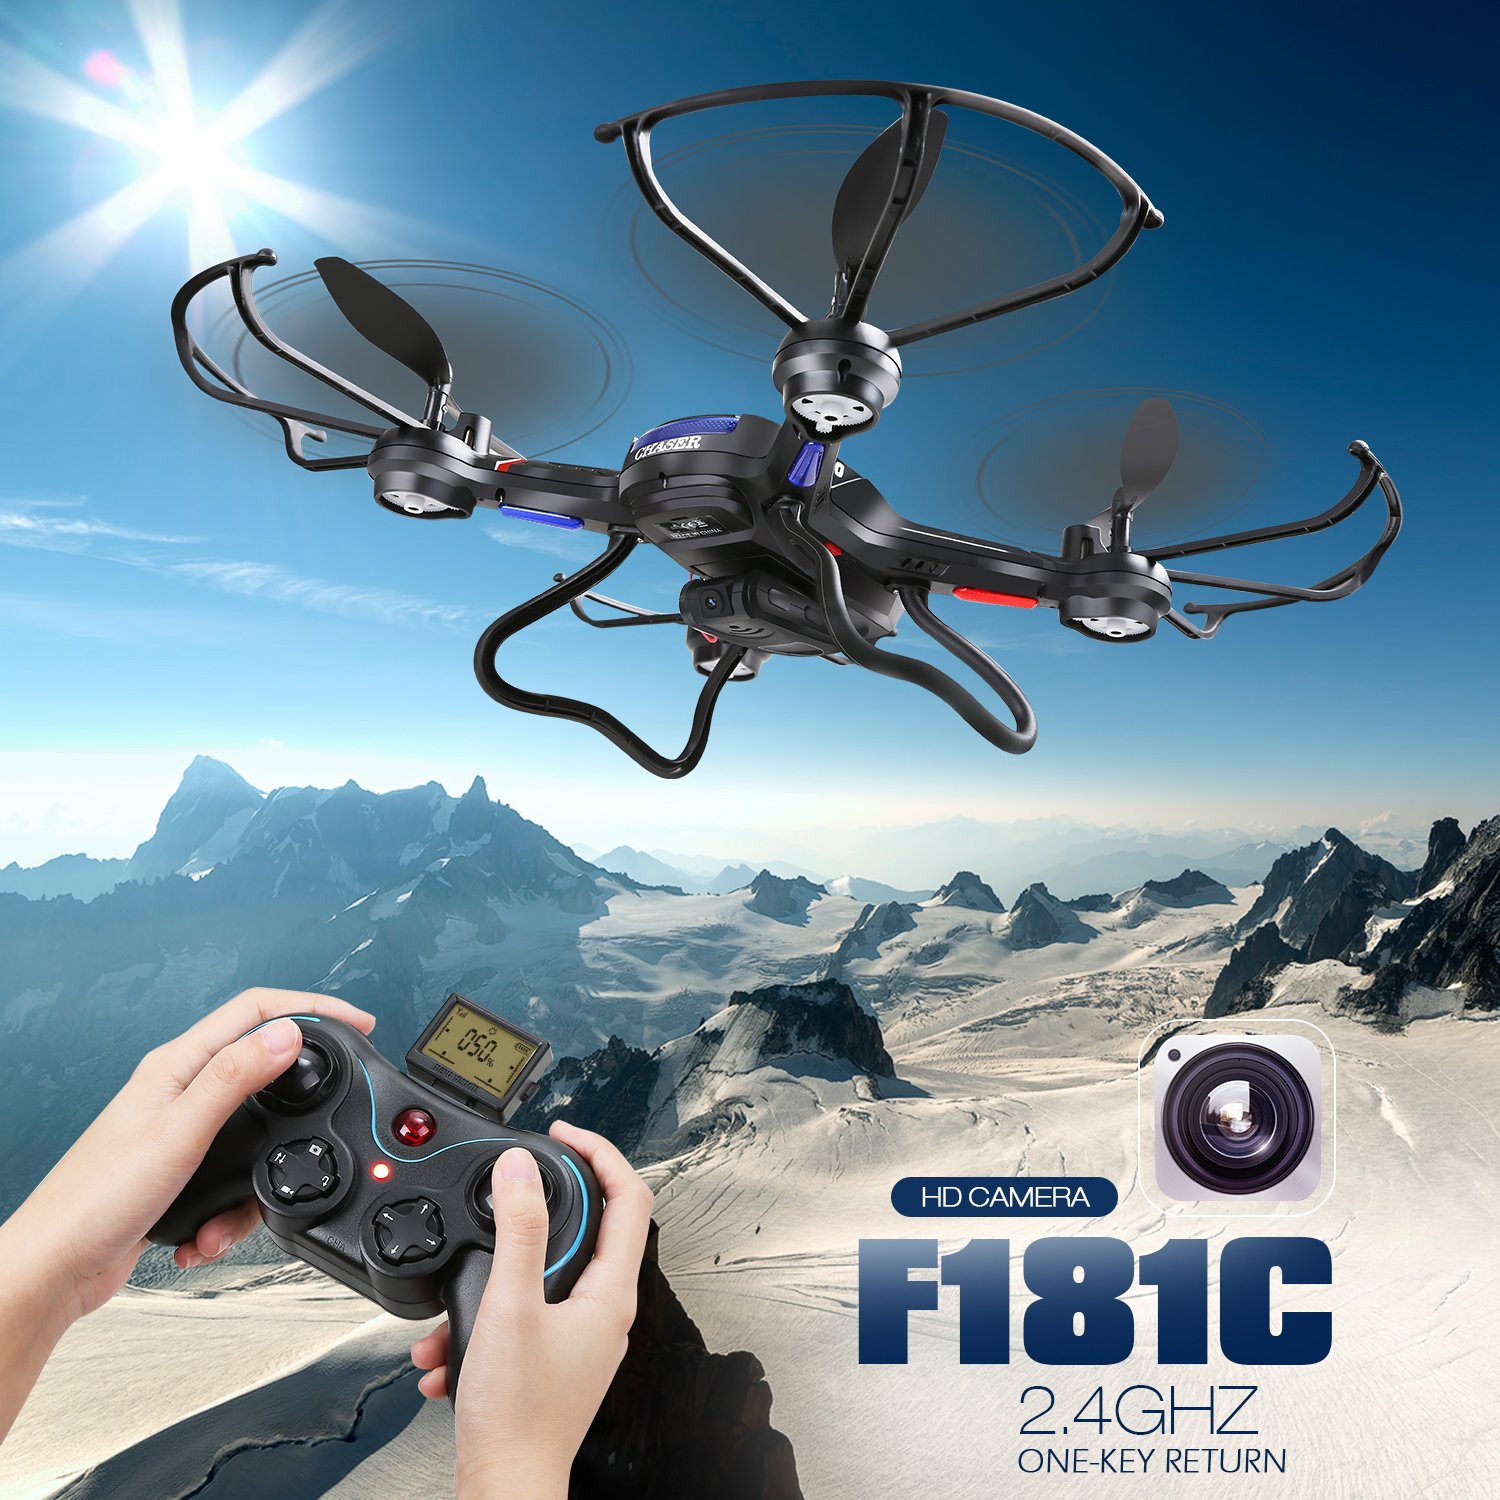 Holy Stone F181C RC Quadcopter Drone with HD Camera RTF 4 Channel 2.4GHz 6-Gyro with Altitude Hold Function,Headless Mode and One Key Return Home, Color Black by Holy Stone (Image #4)